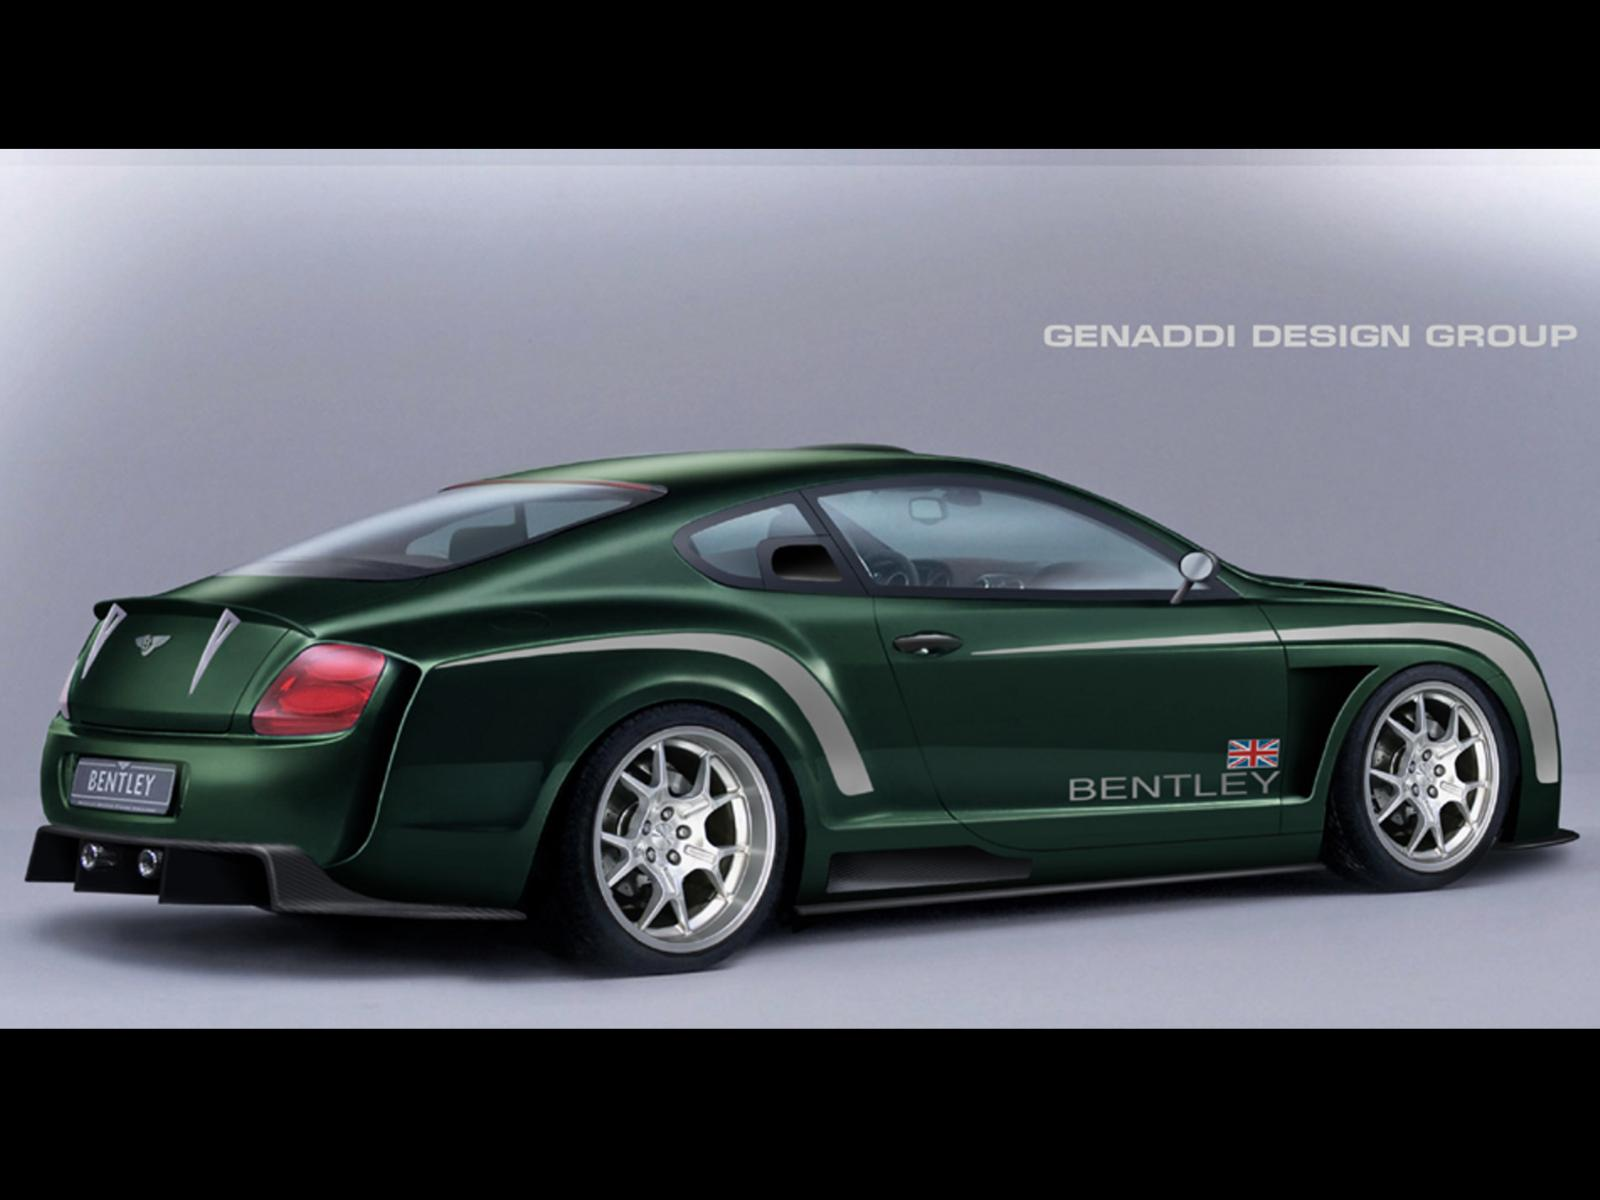 Genaddi Design Bentley Continental GT/LM photo #17318